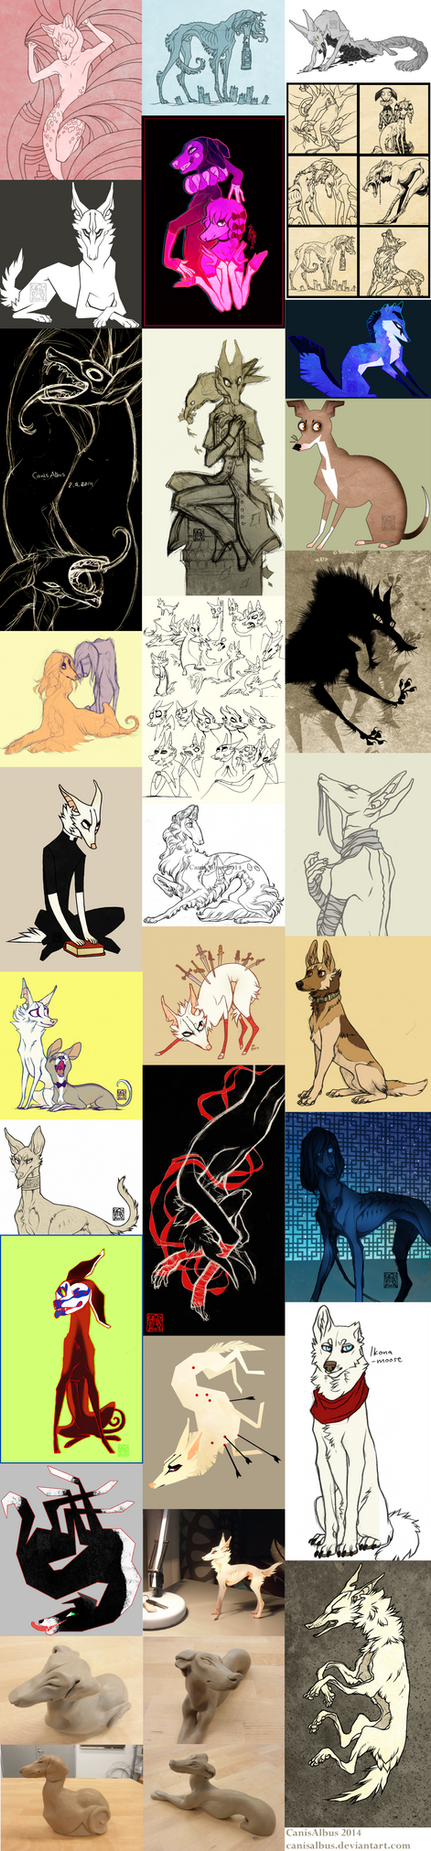 Sketch Dump 16 by CanisAlbus